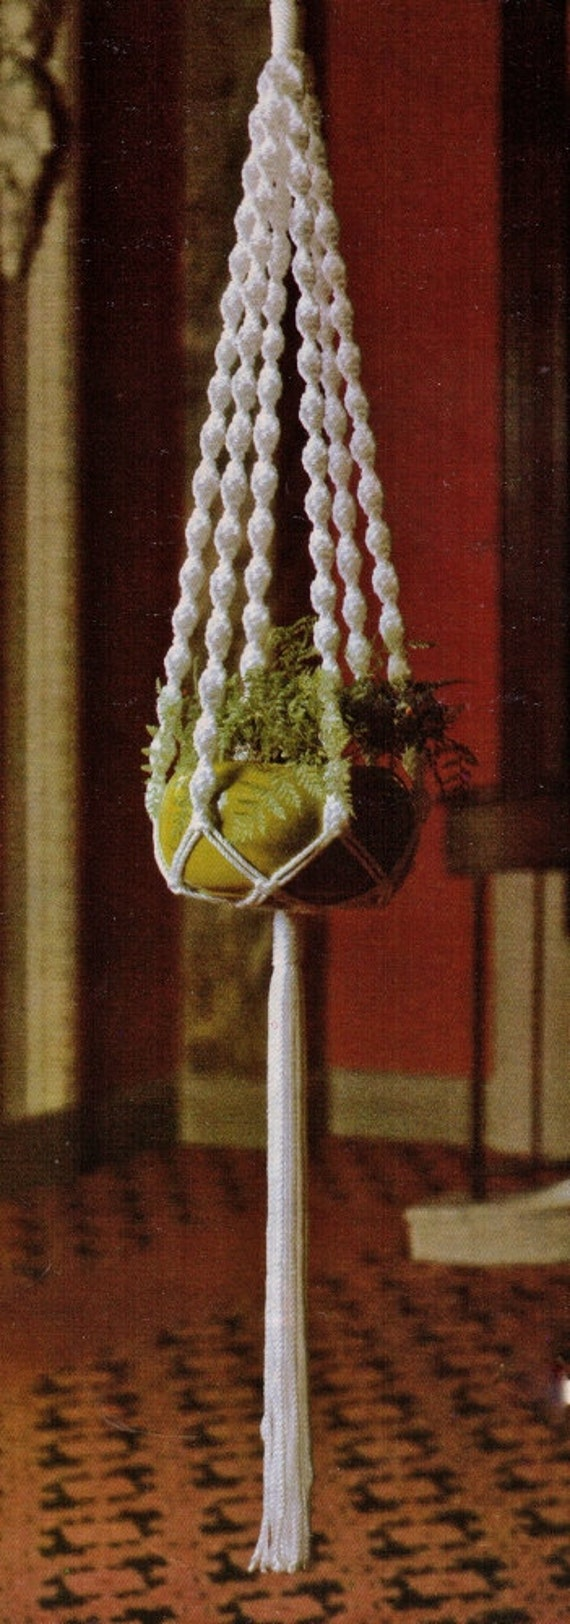 macrame plant hanger pattern pdf vintage 1970s macrame hanging pot plant by crafting4ever2013 8243